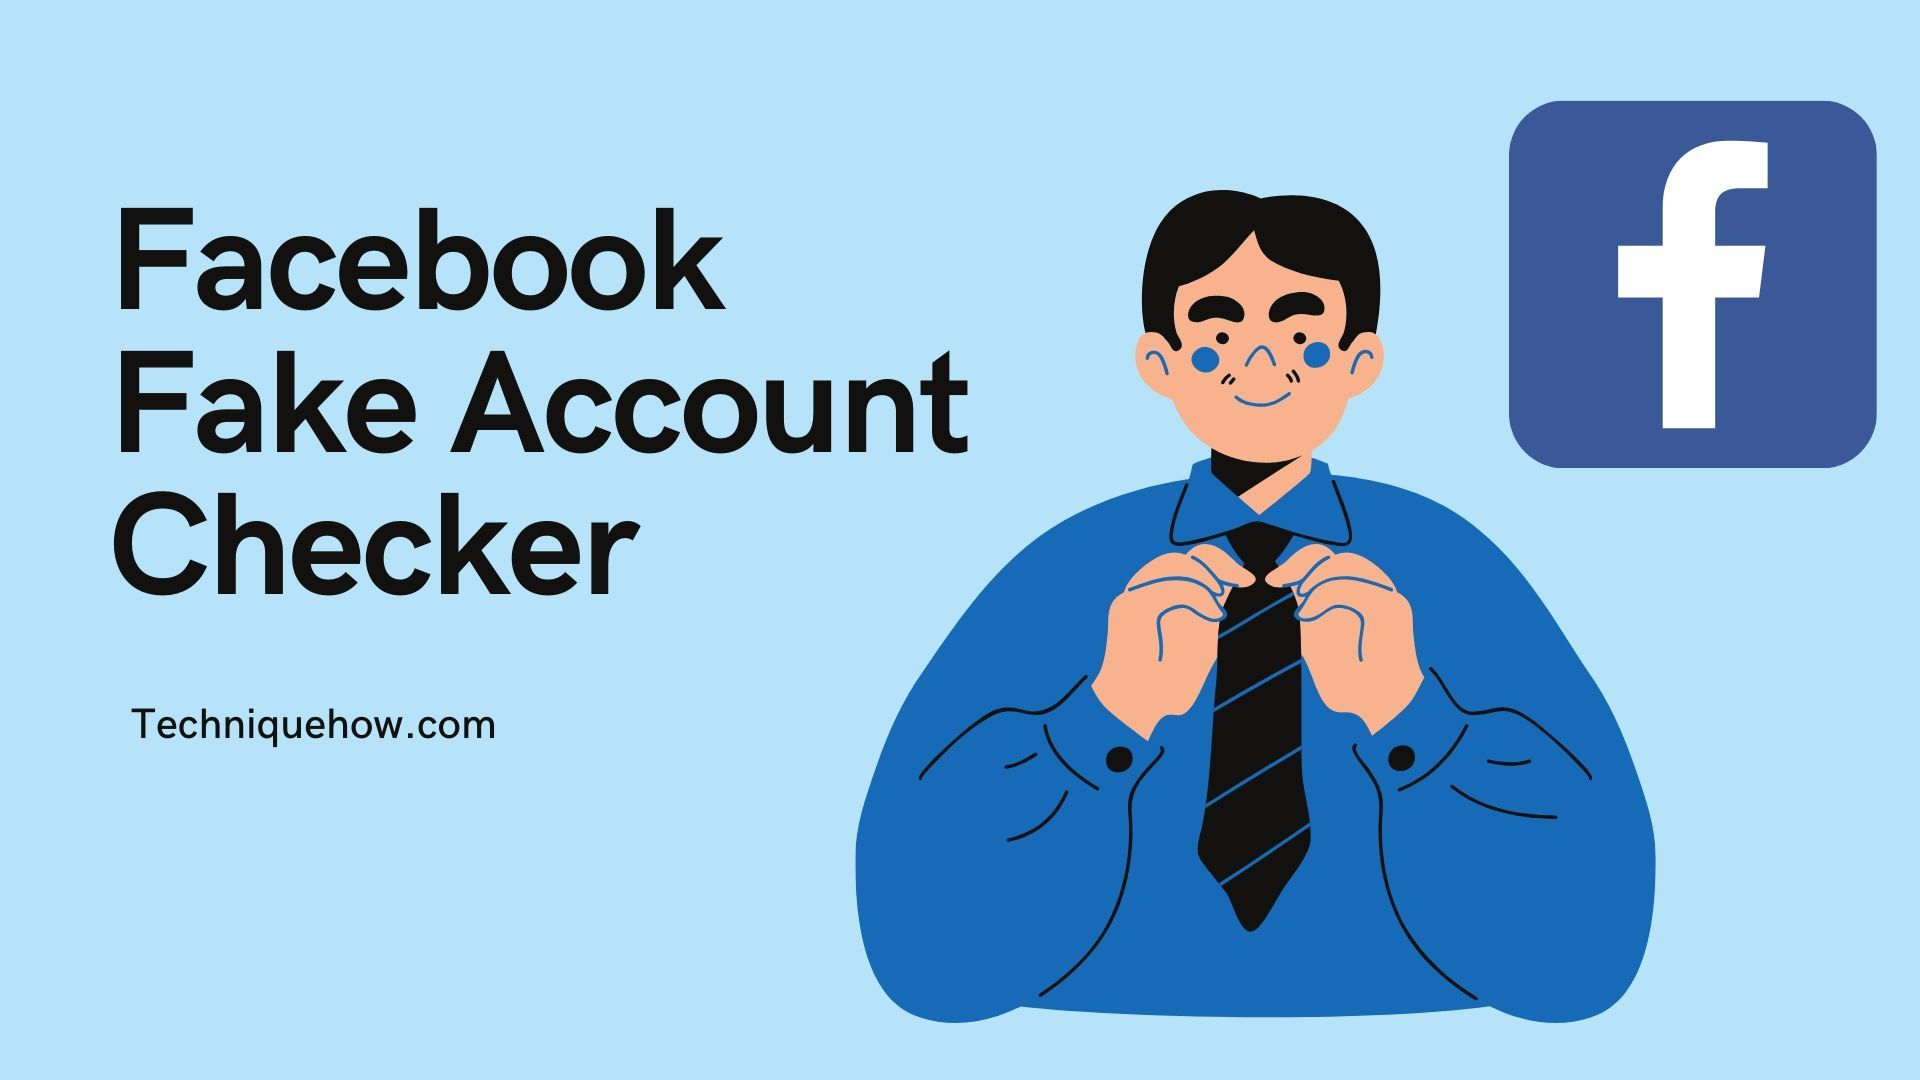 Facebook fake account checker list stepbystep guide in